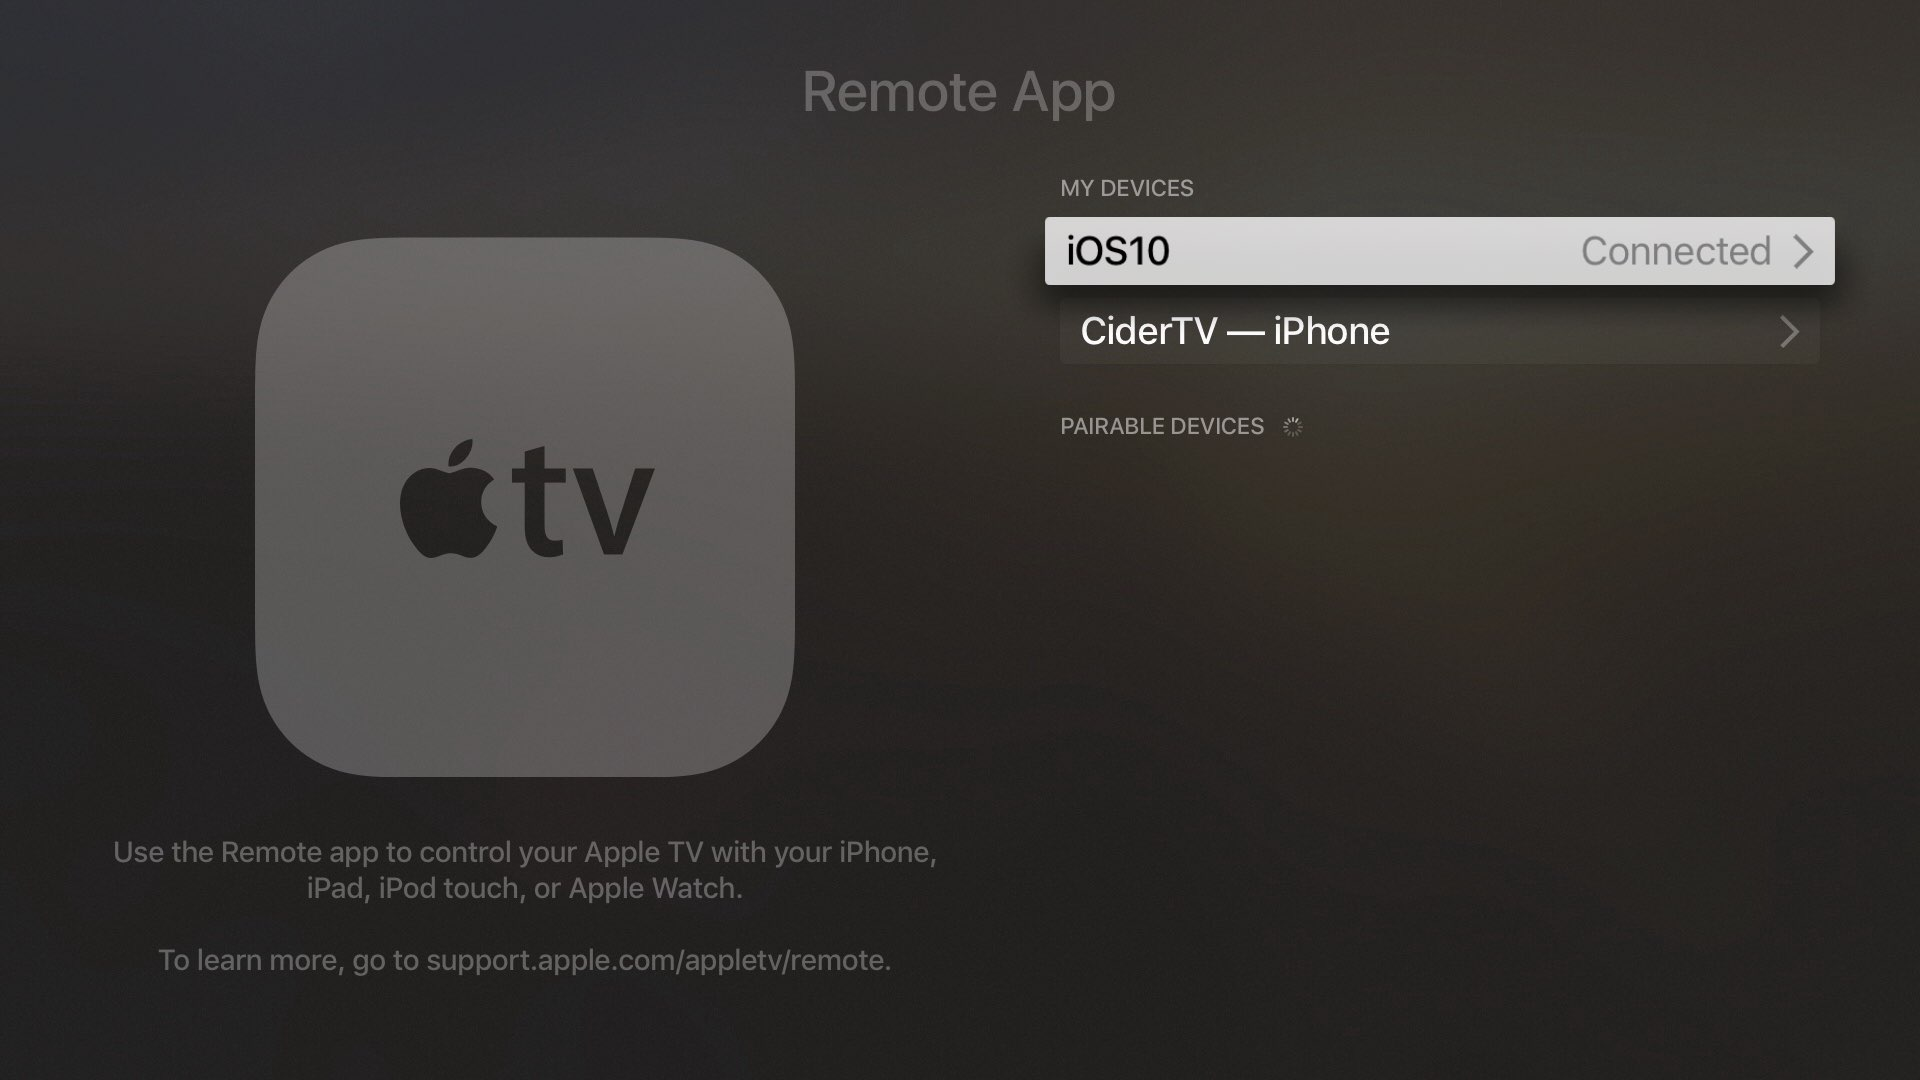 tvOS 10 Aplicación remota par Apple TV captura de pantalla 003